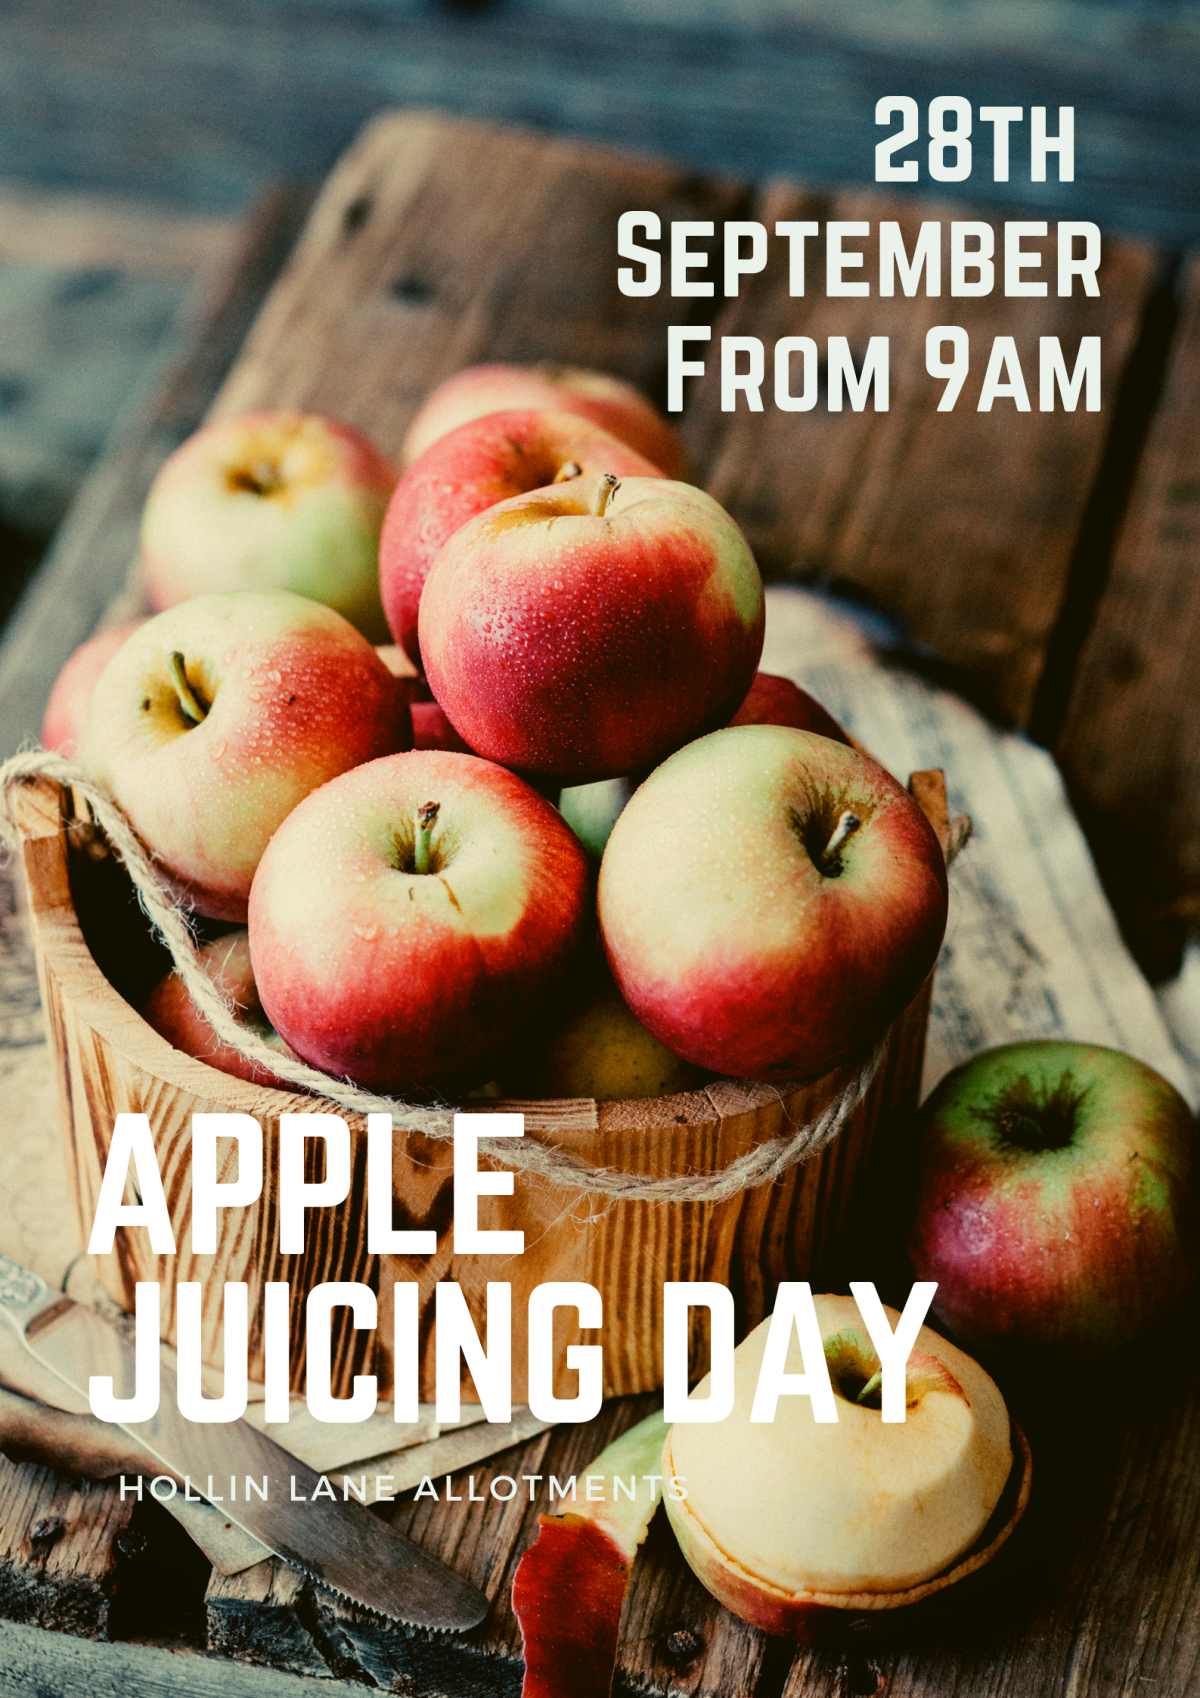 Apple Juicing 2019